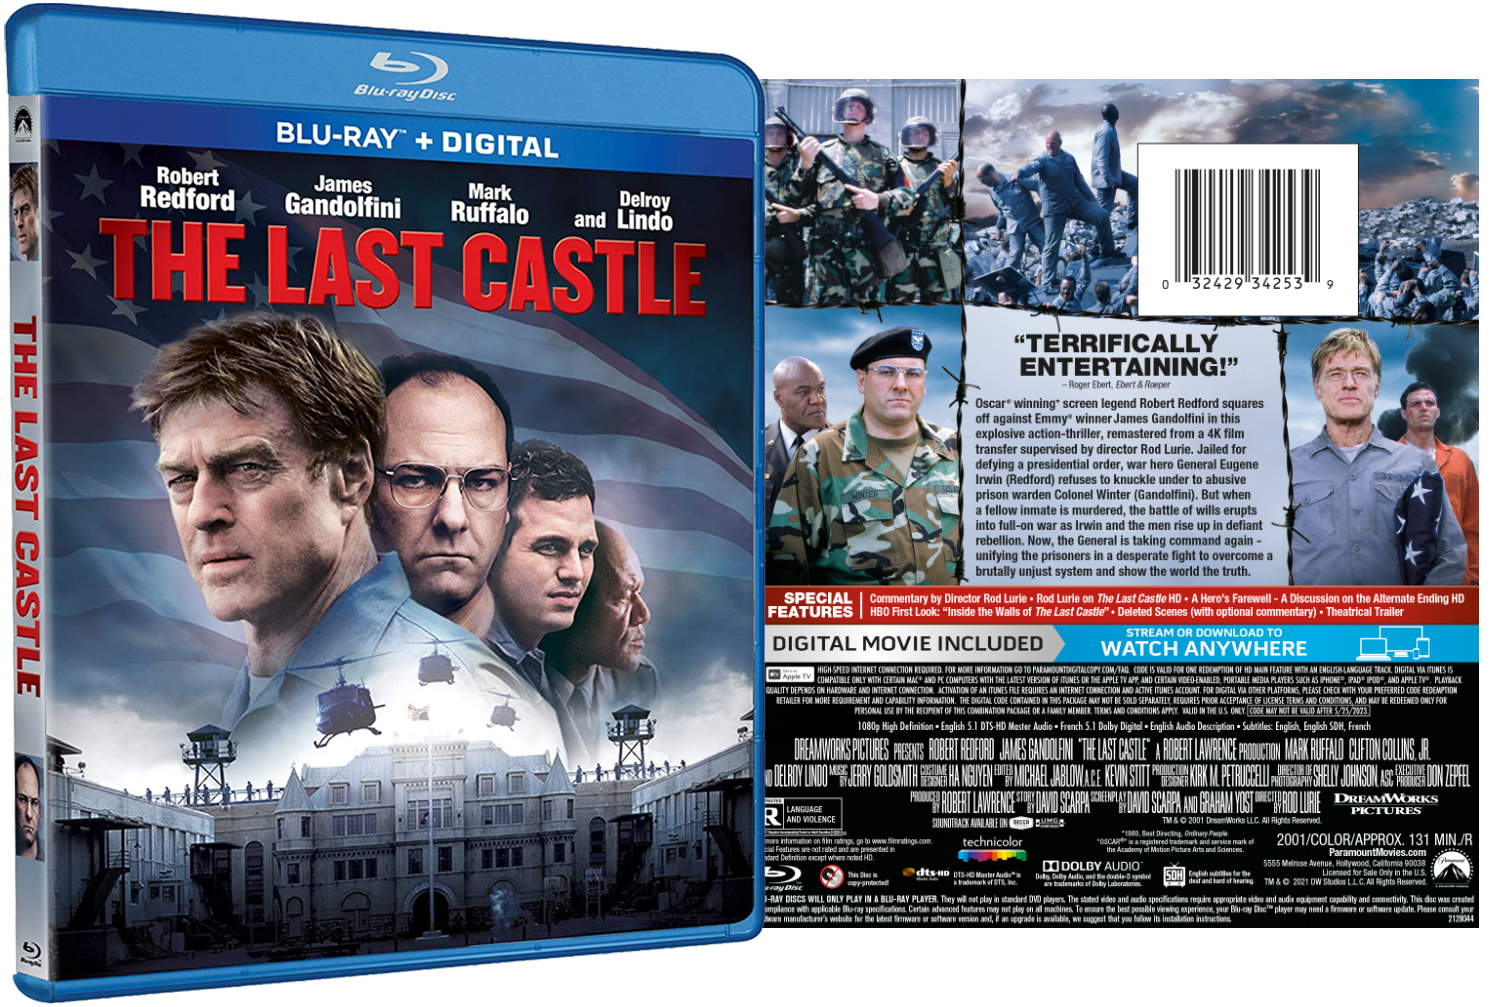 THE LAST CASTLE SPECIAL FEATURES UNVEILED